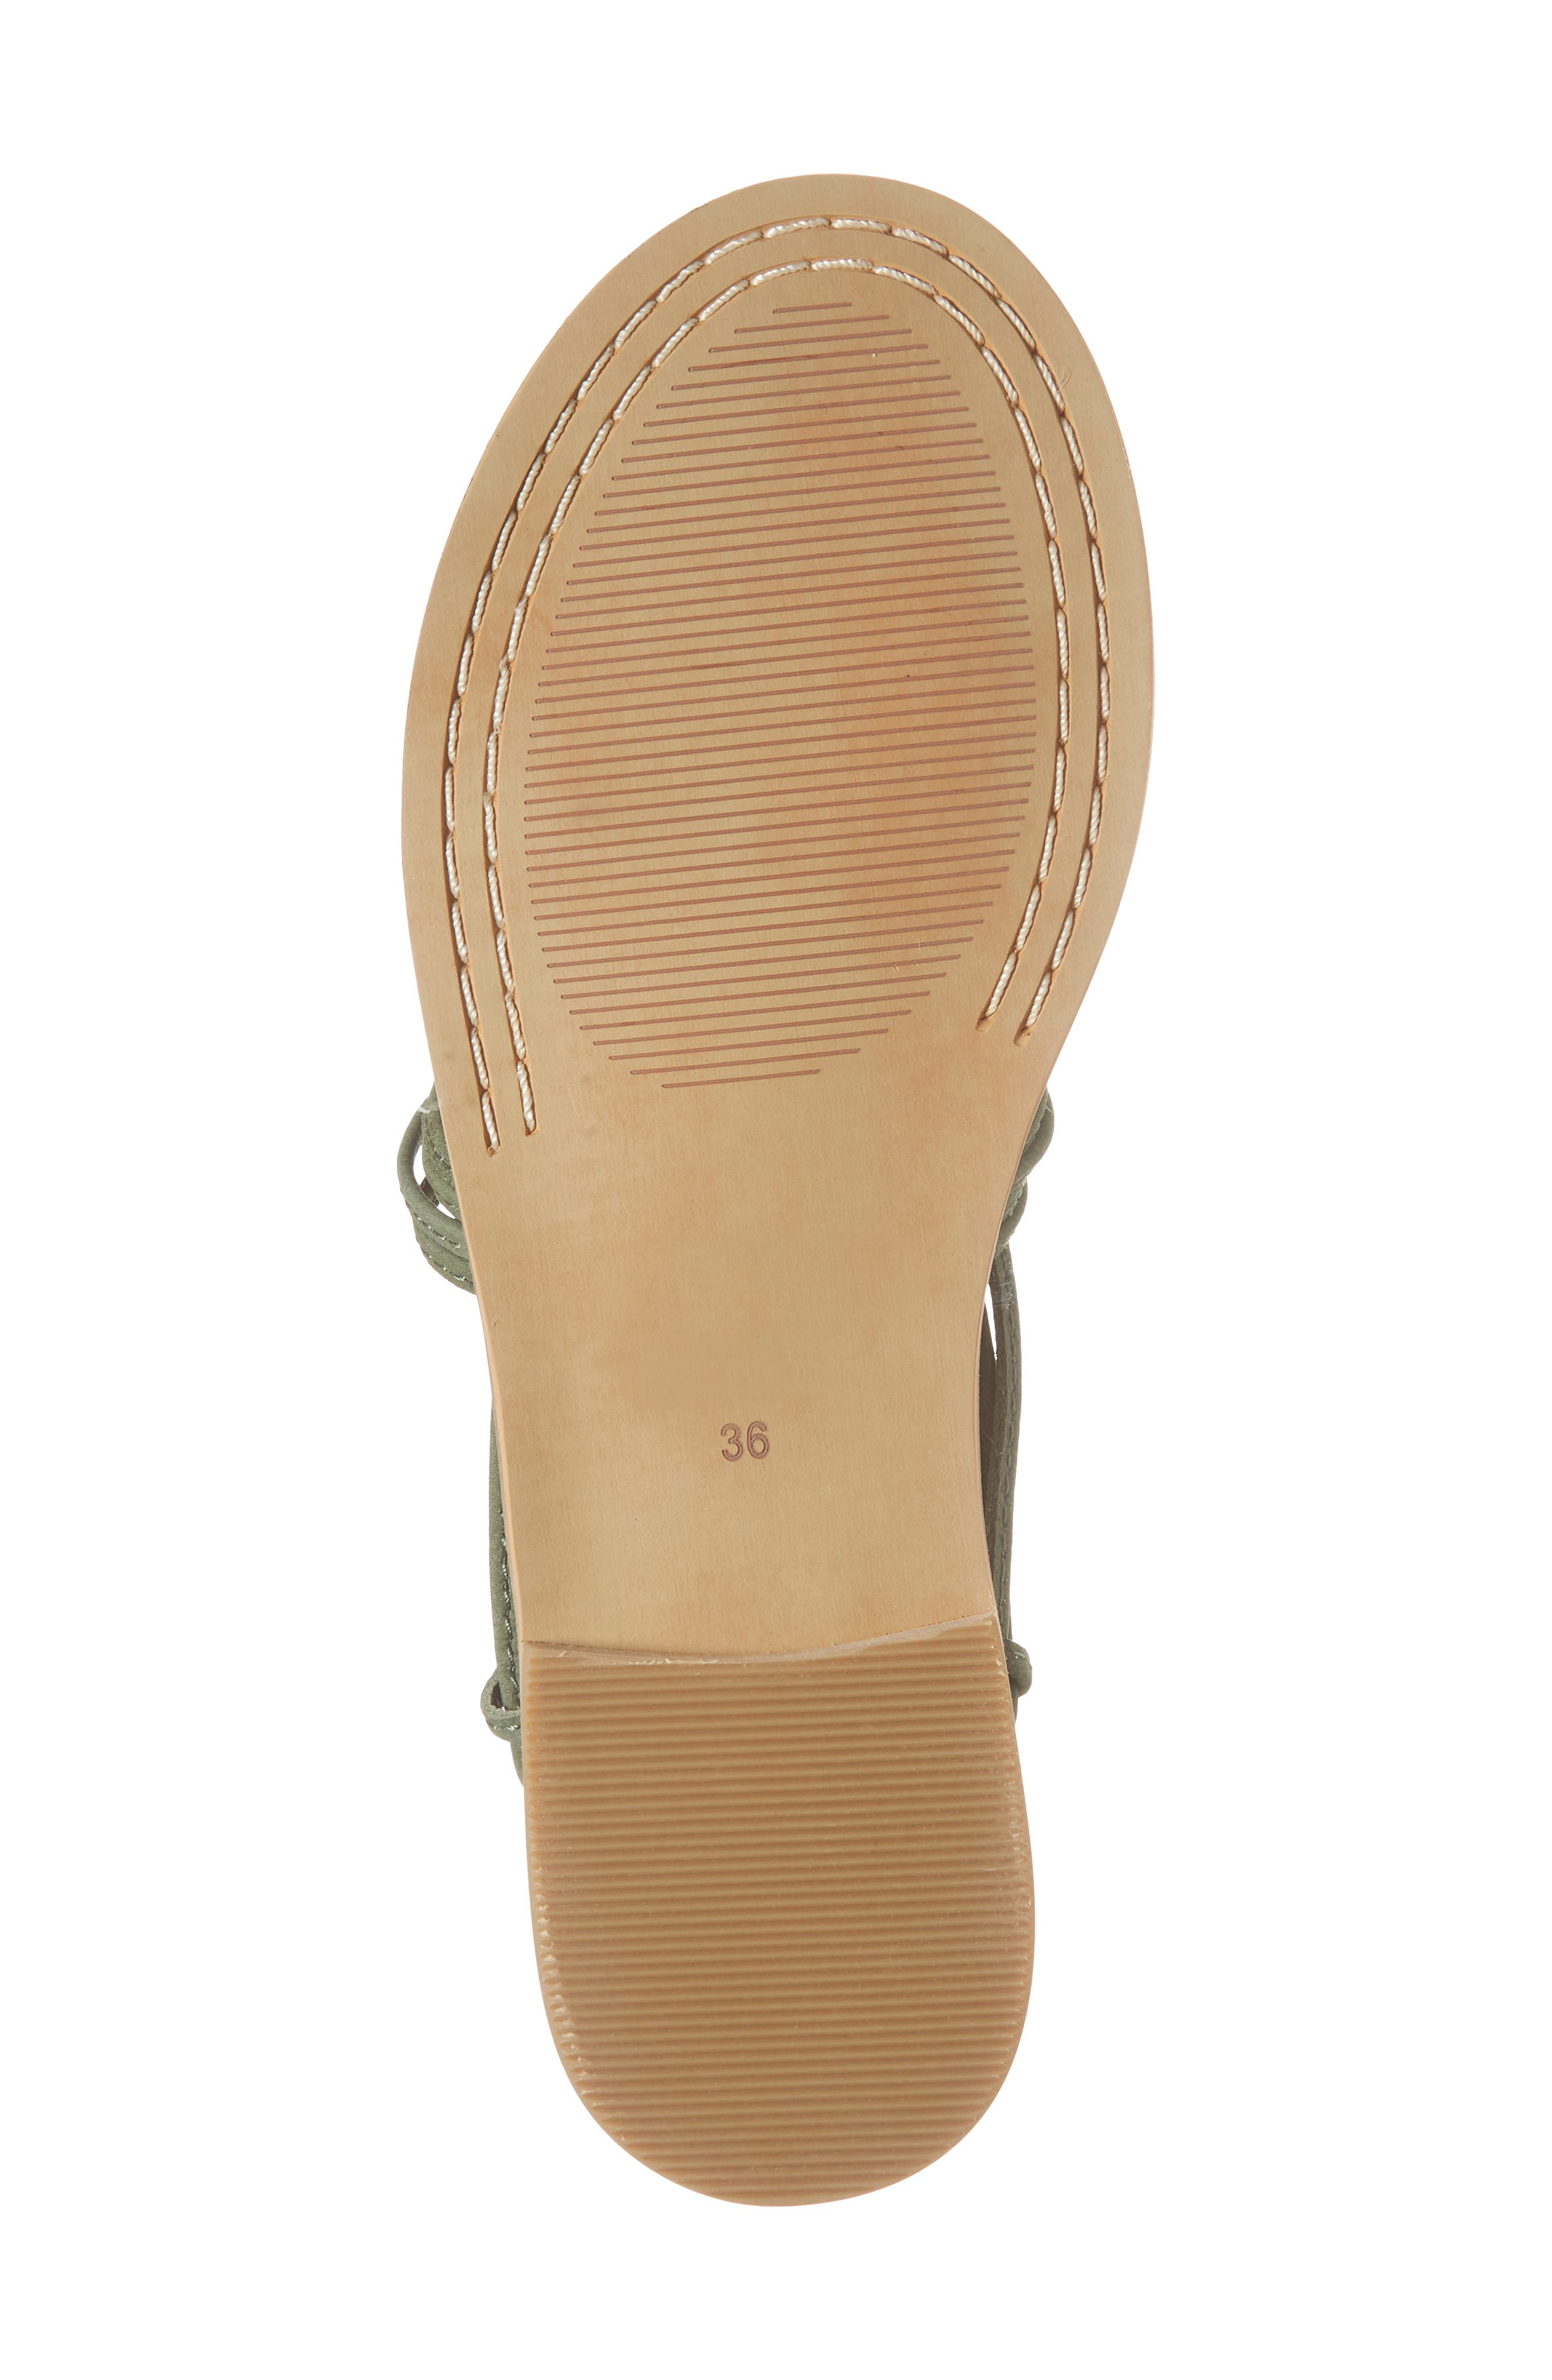 Theory Strappy Flat Sandal,                             Alternate thumbnail 18, color,